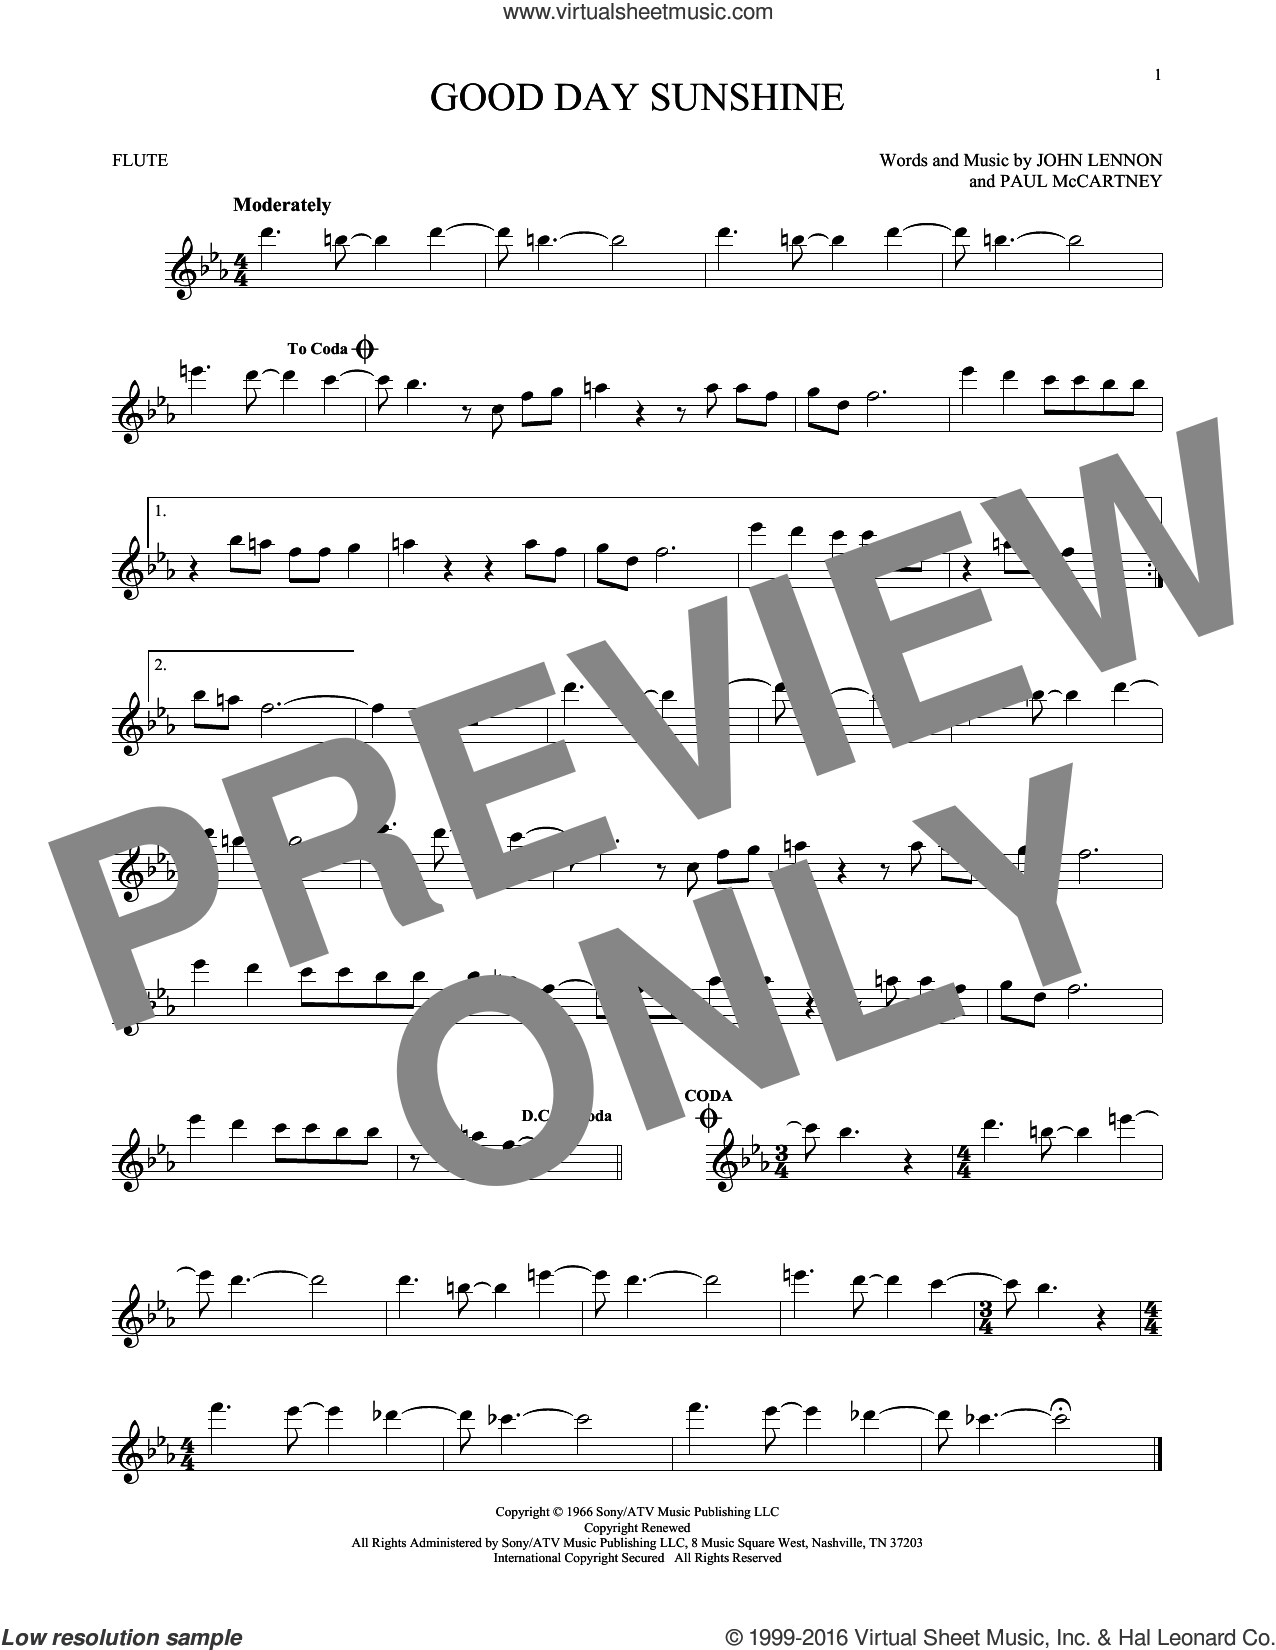 Good Day Sunshine sheet music for flute solo by The Beatles, John Lennon and Paul McCartney, intermediate skill level